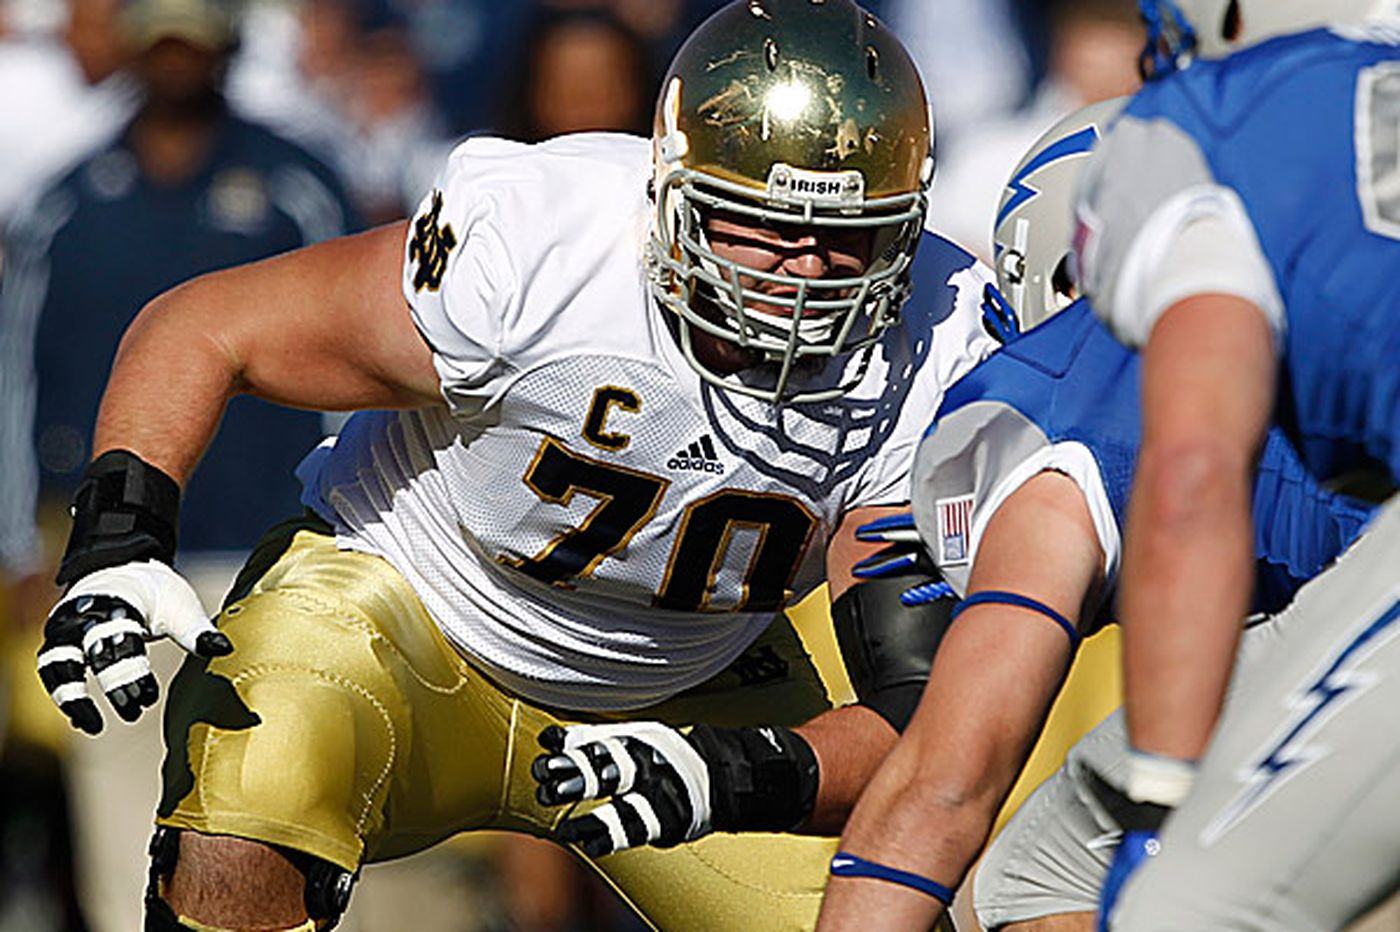 Analyzing the NFL draft: Offensive linemen